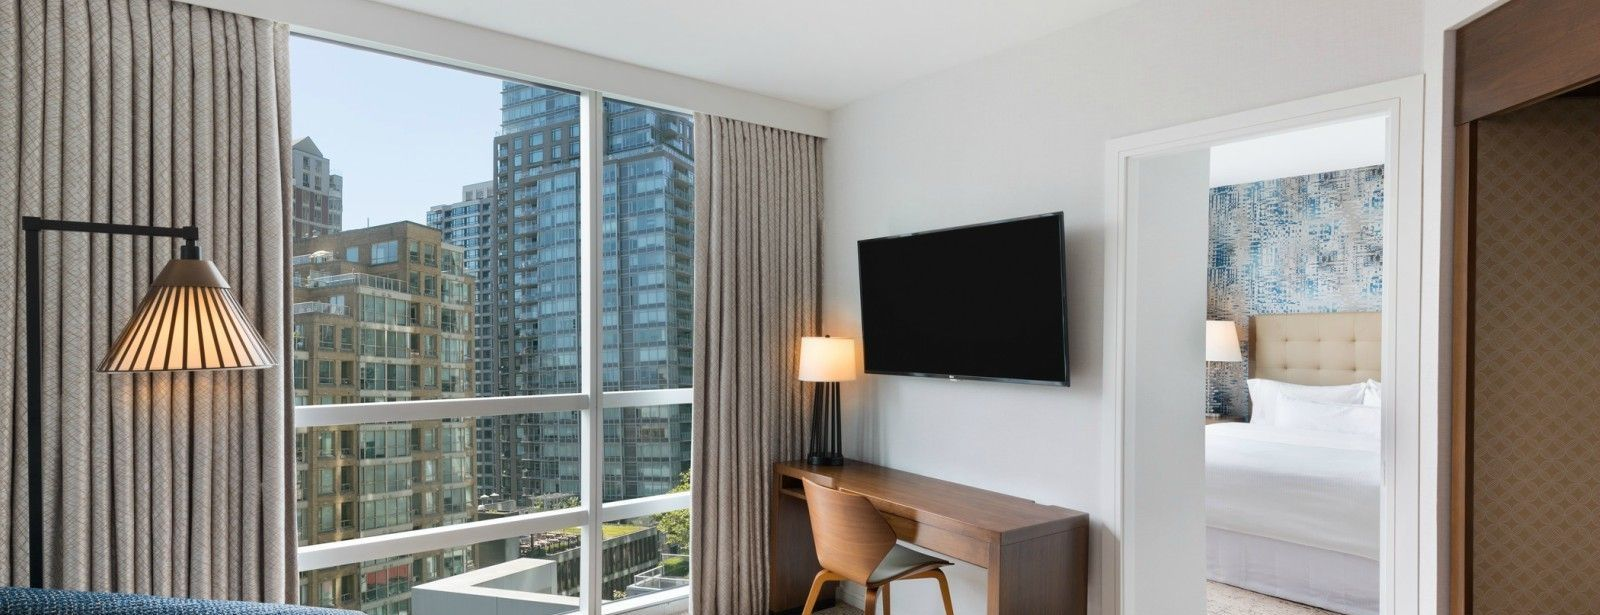 The Westin Grand, Vancouver Hotel - Studio Suite